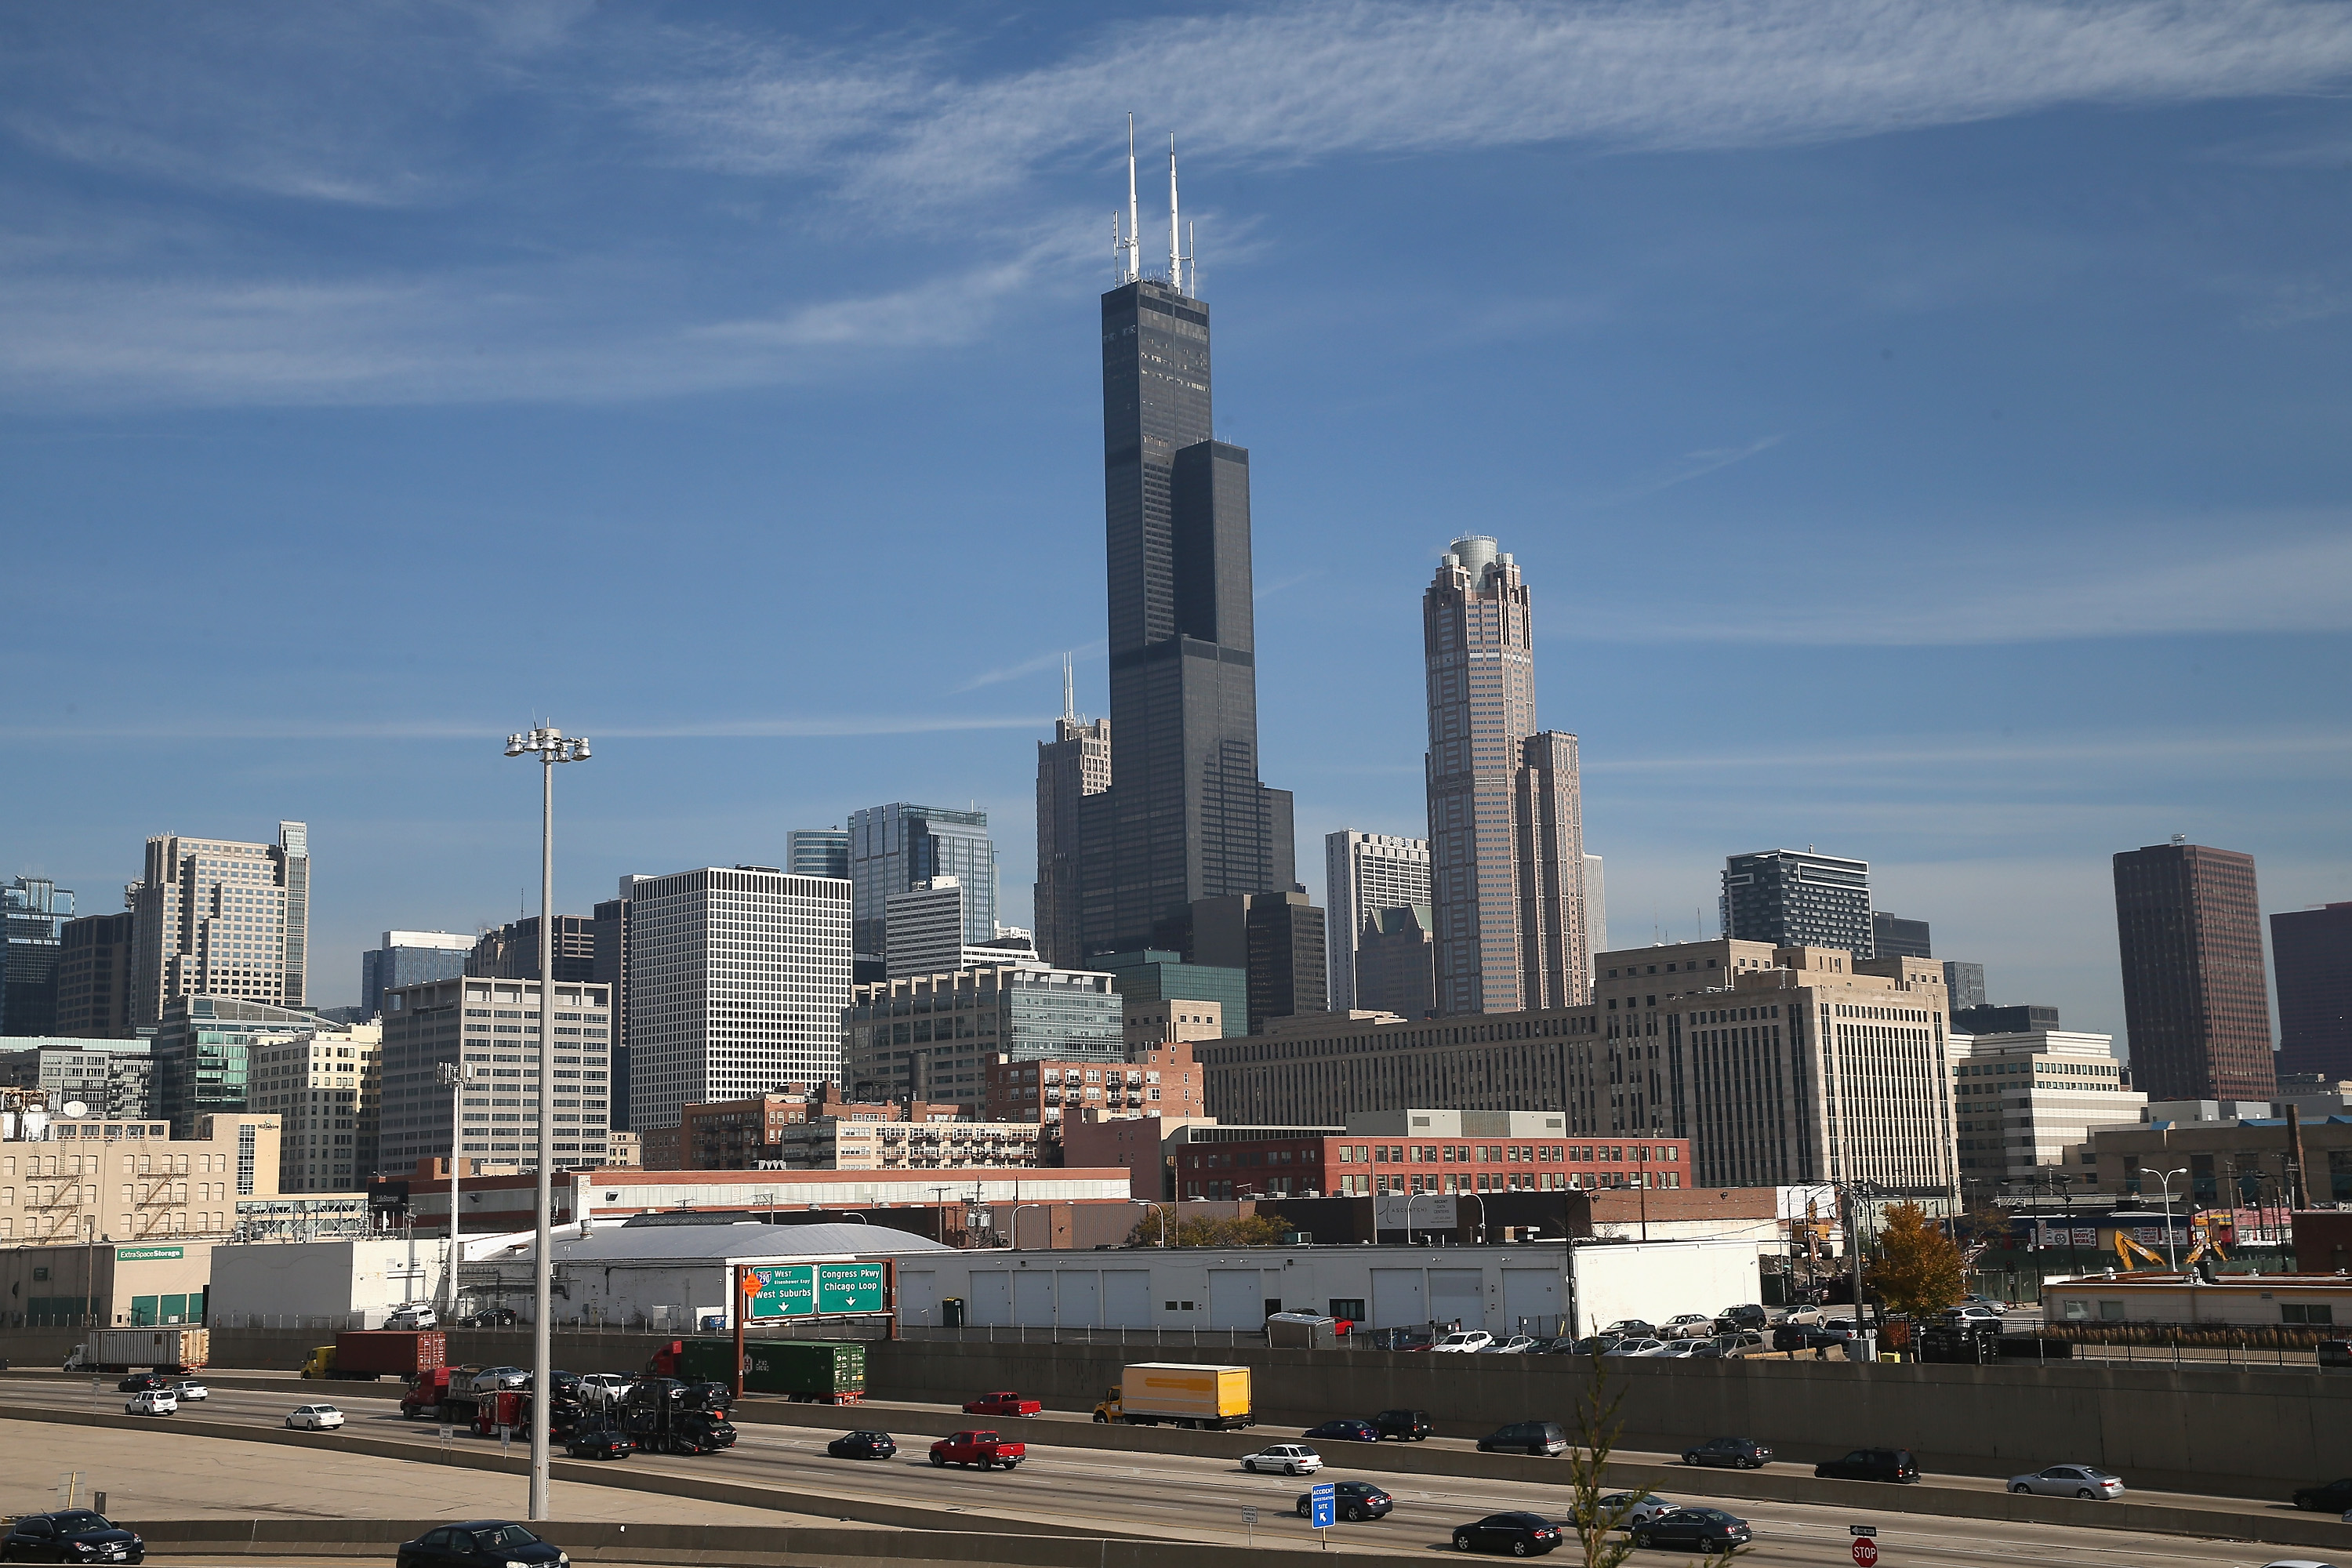 187387234-organization-meets-to-settle-tallest-building-debate-between-one-world-trade-and-willis-tower.jpg